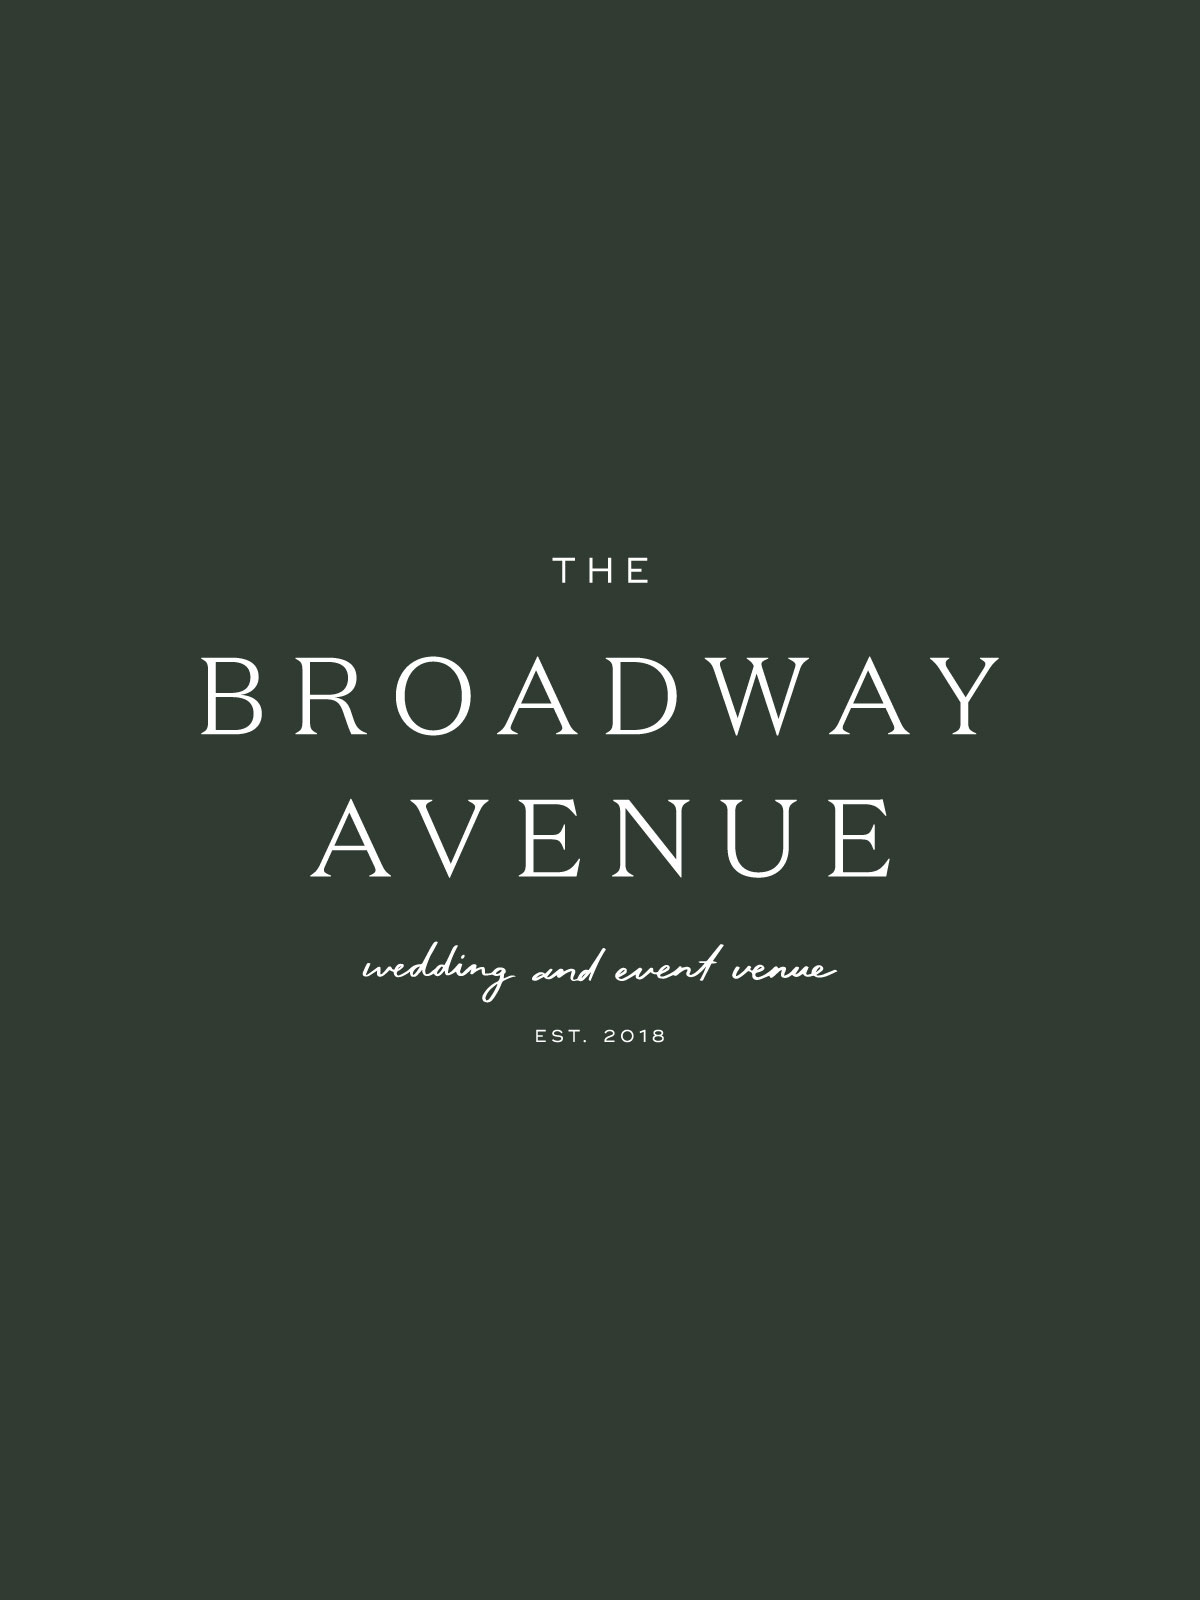 The Broadway Avenue Brand and Web Design by Viola Hill Studio